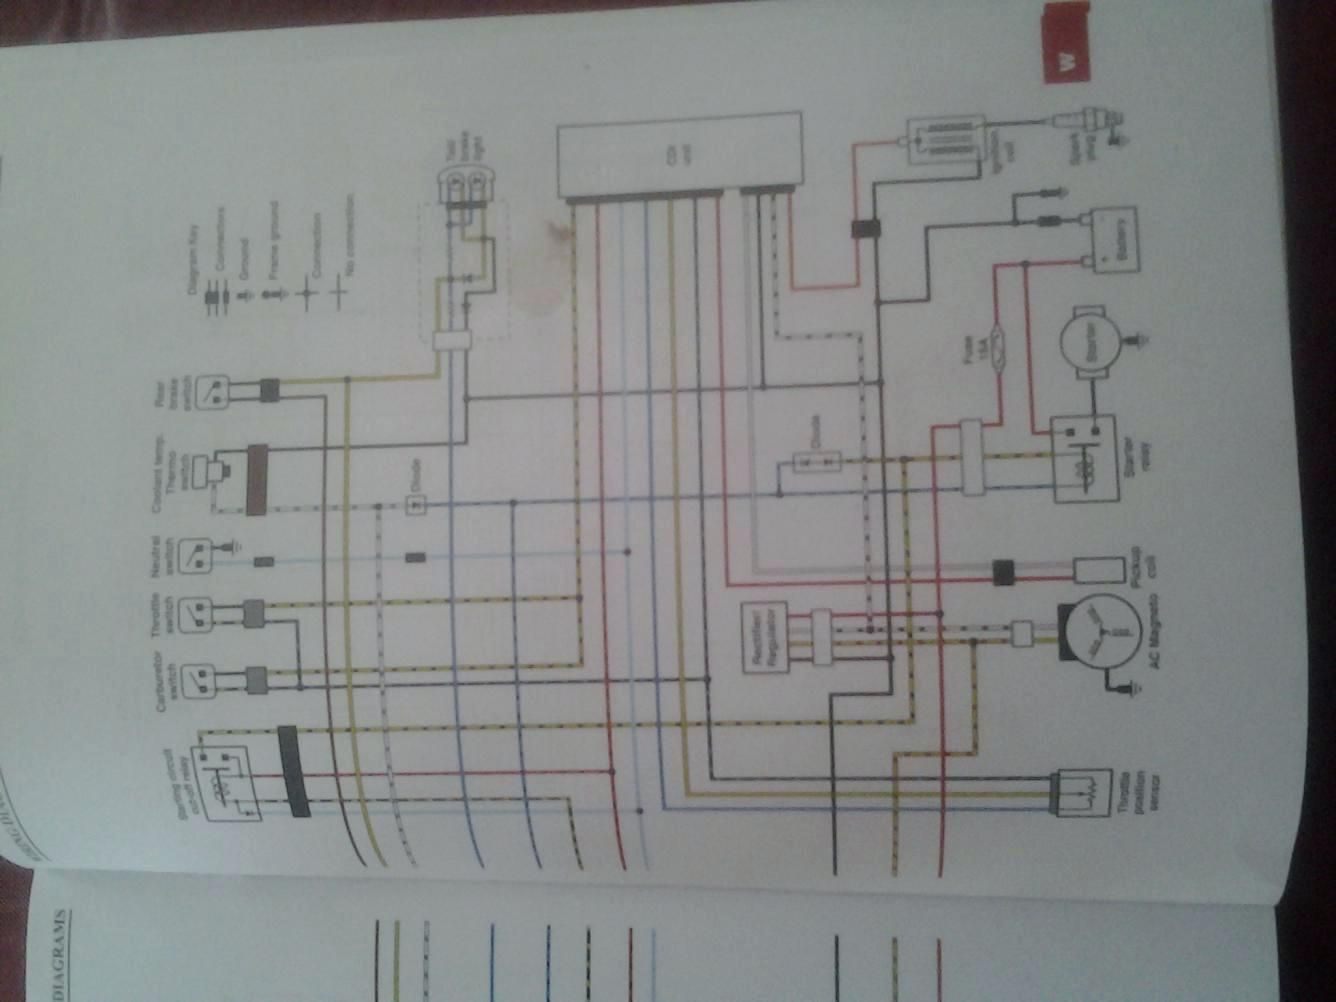 2004 Yfz 450 Wiring Diagram Rd Yamaha For Me Best Of 2008 ... Yfz Cooling Fan Wiring Diagram on